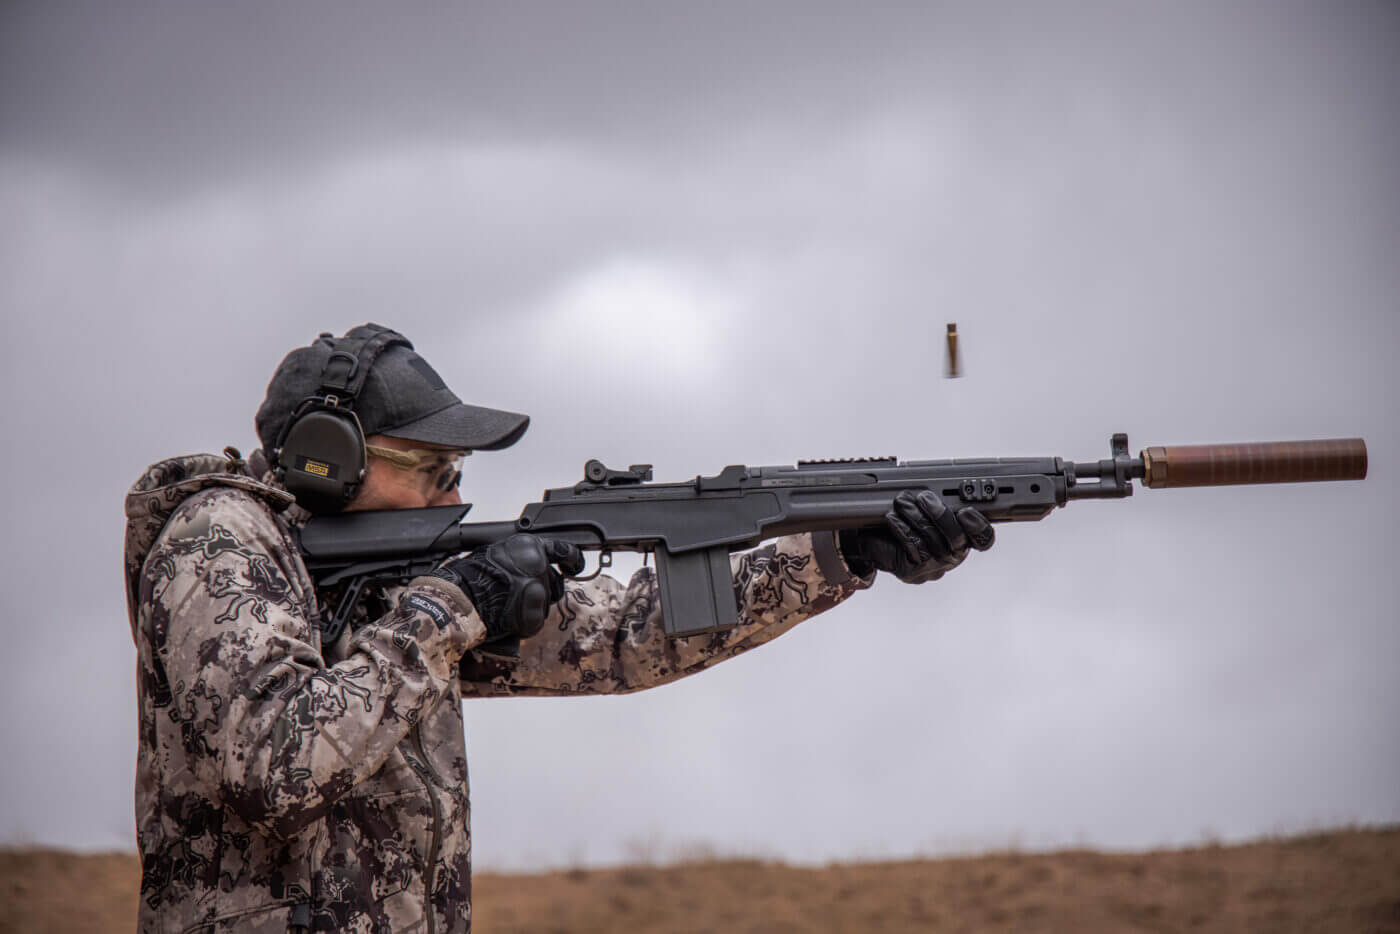 Properly tuned M1A rifle with suppressor